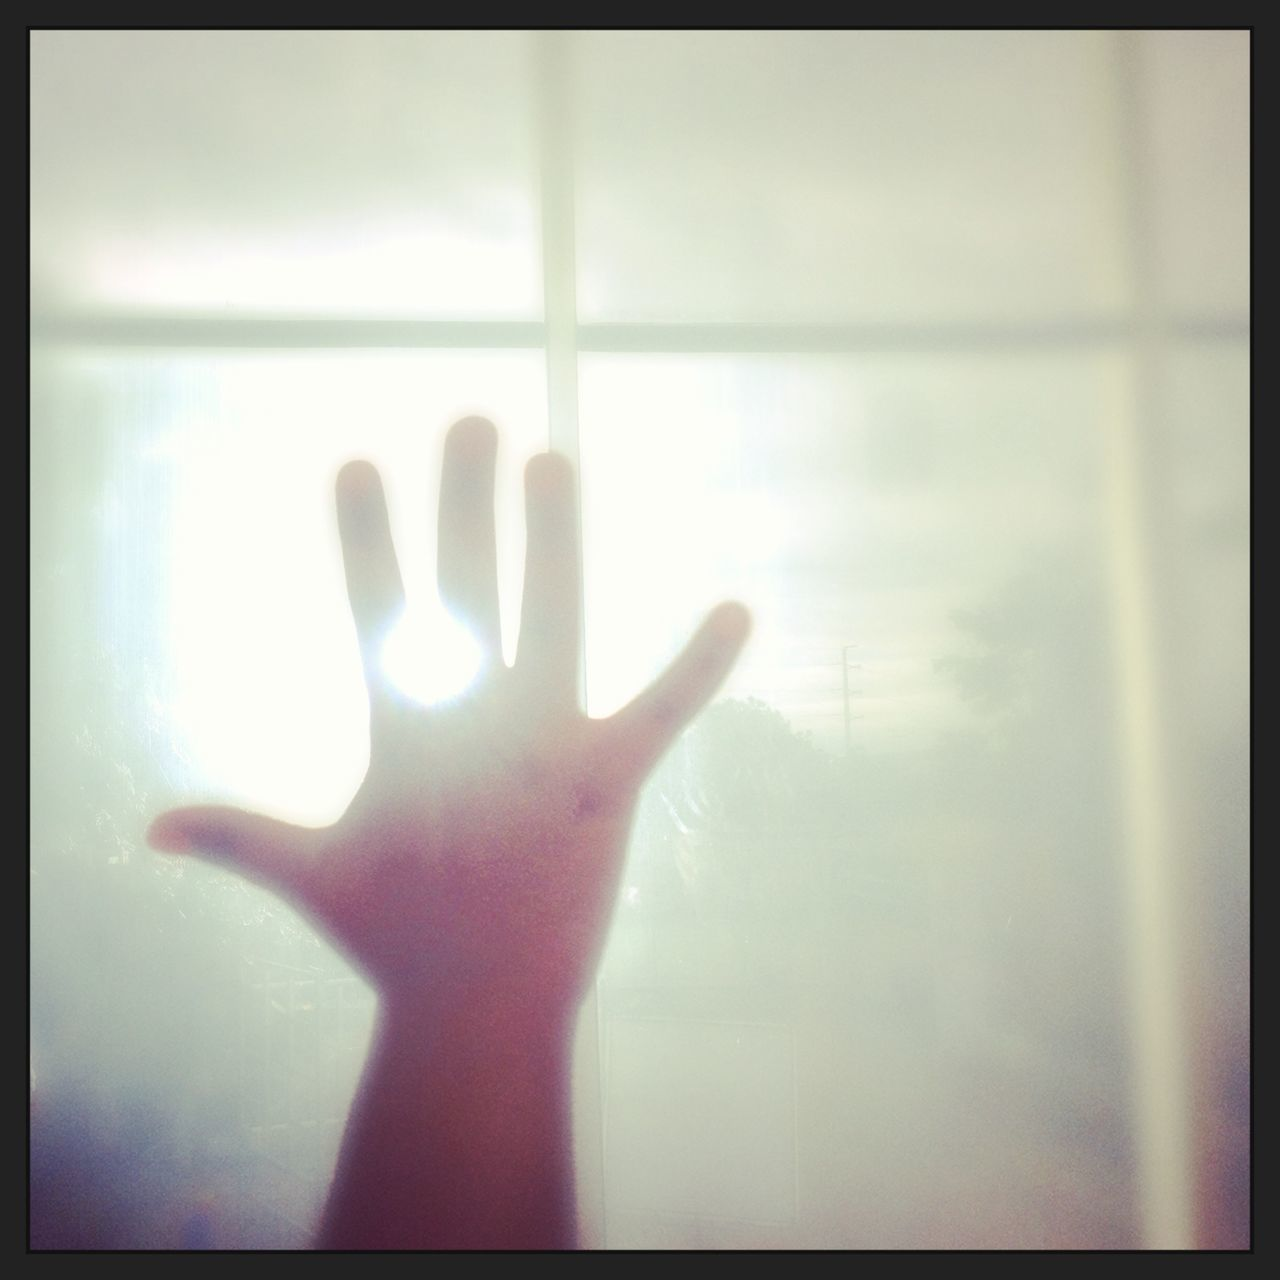 human hand, human finger, human body part, gesturing, one person, indoors, window, day, palm, real people, close-up, sky, people